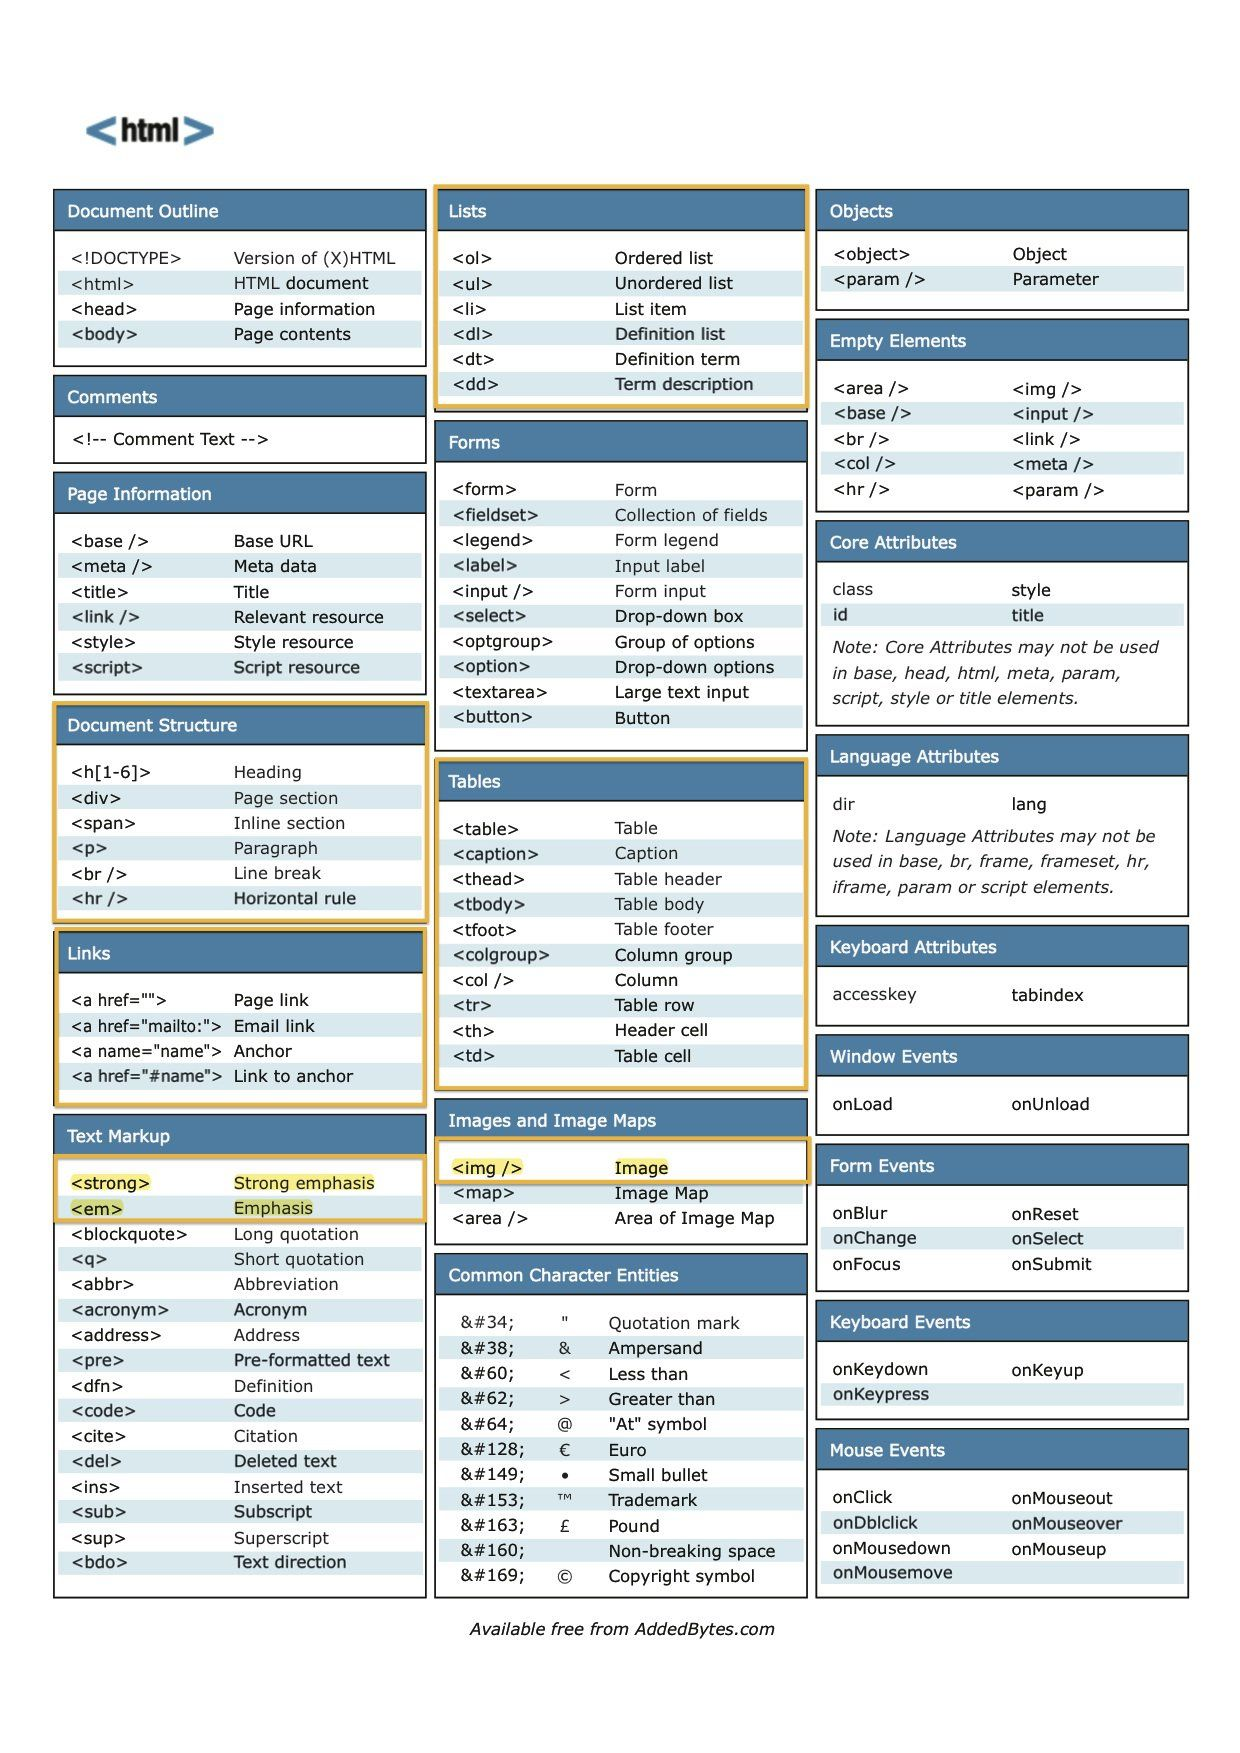 Download html cheat sheet for free tips and tricks pinterest download html cheat sheet for free cheat sheetsux designkeyboardcomputers symbolsicons biocorpaavc Choice Image